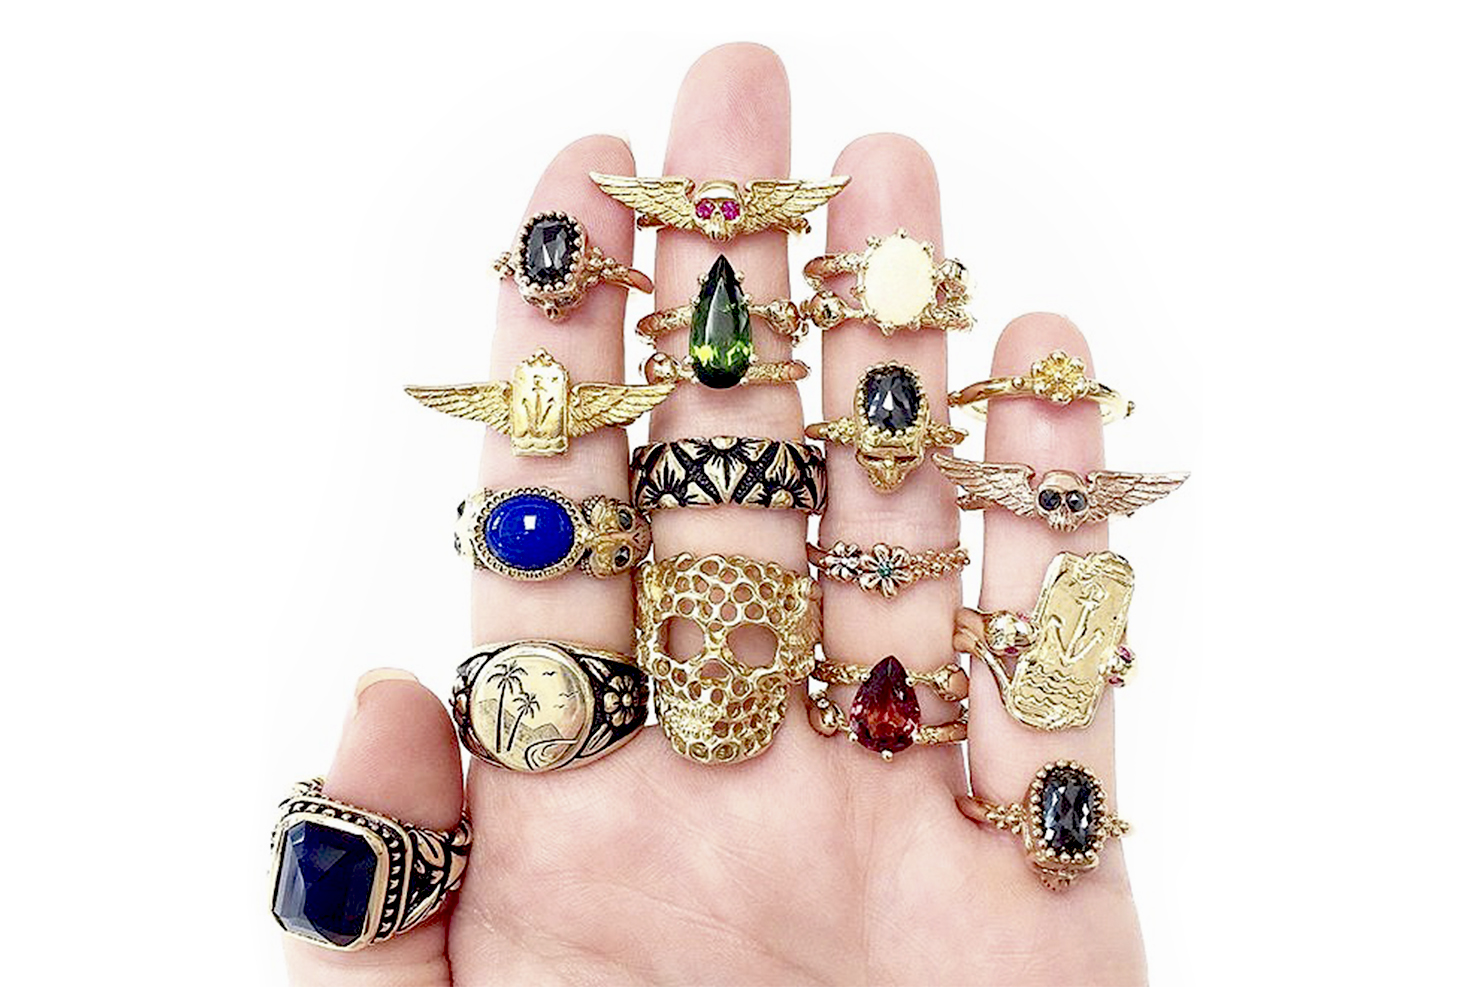 rings on fingers.jpg